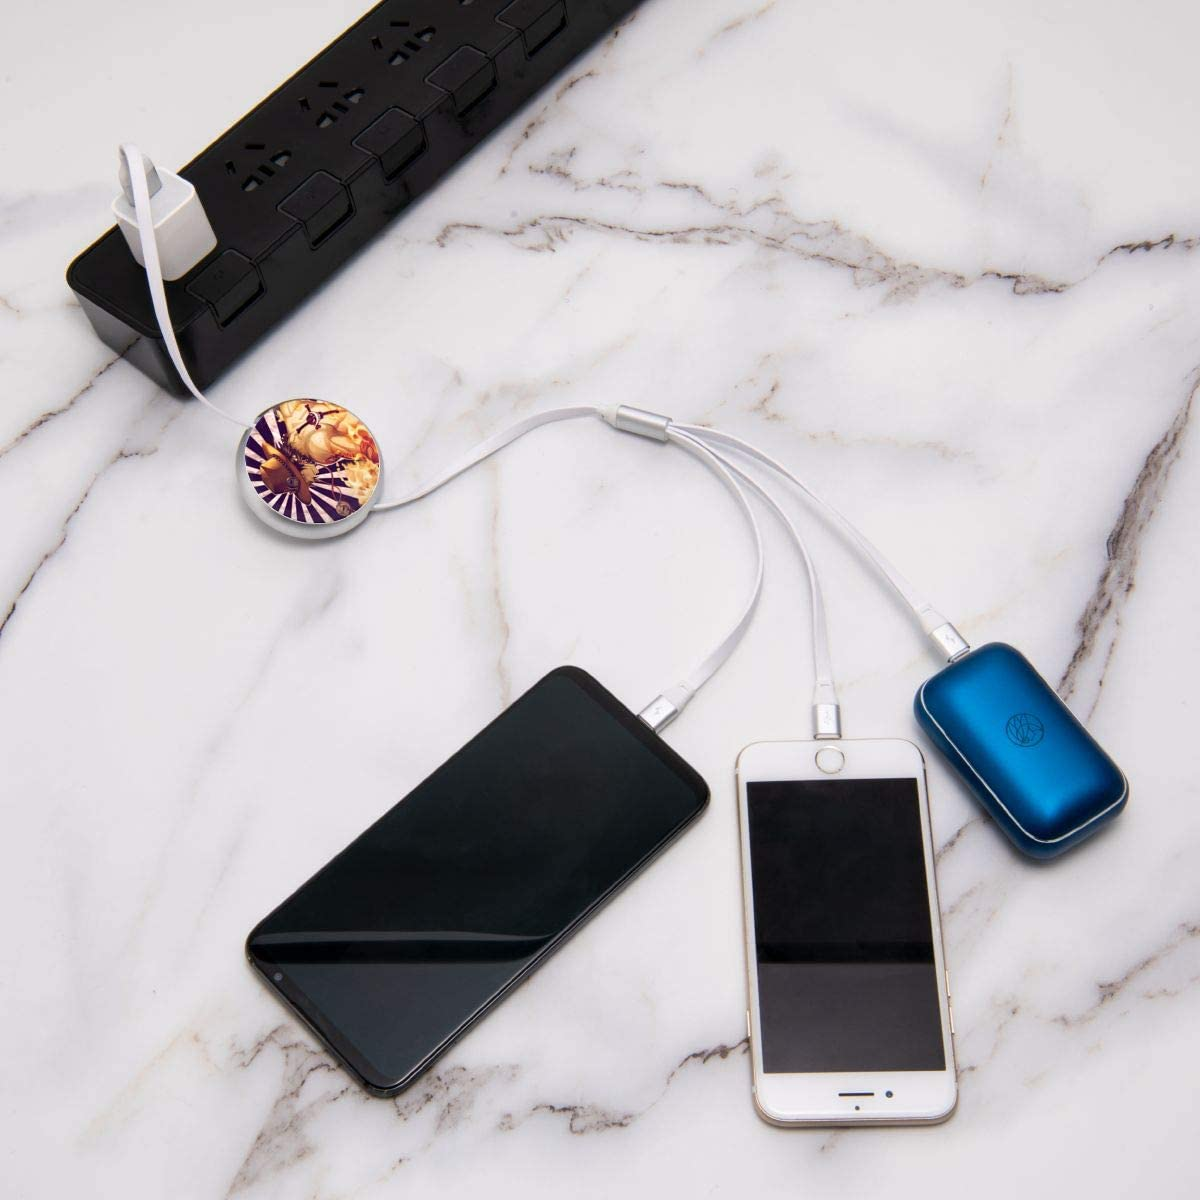 Etc. N//C One Piece3-In-1 Telescopic Multi-Function Charging Cable Tpye-C Universal Interface Suitable for Apple Android